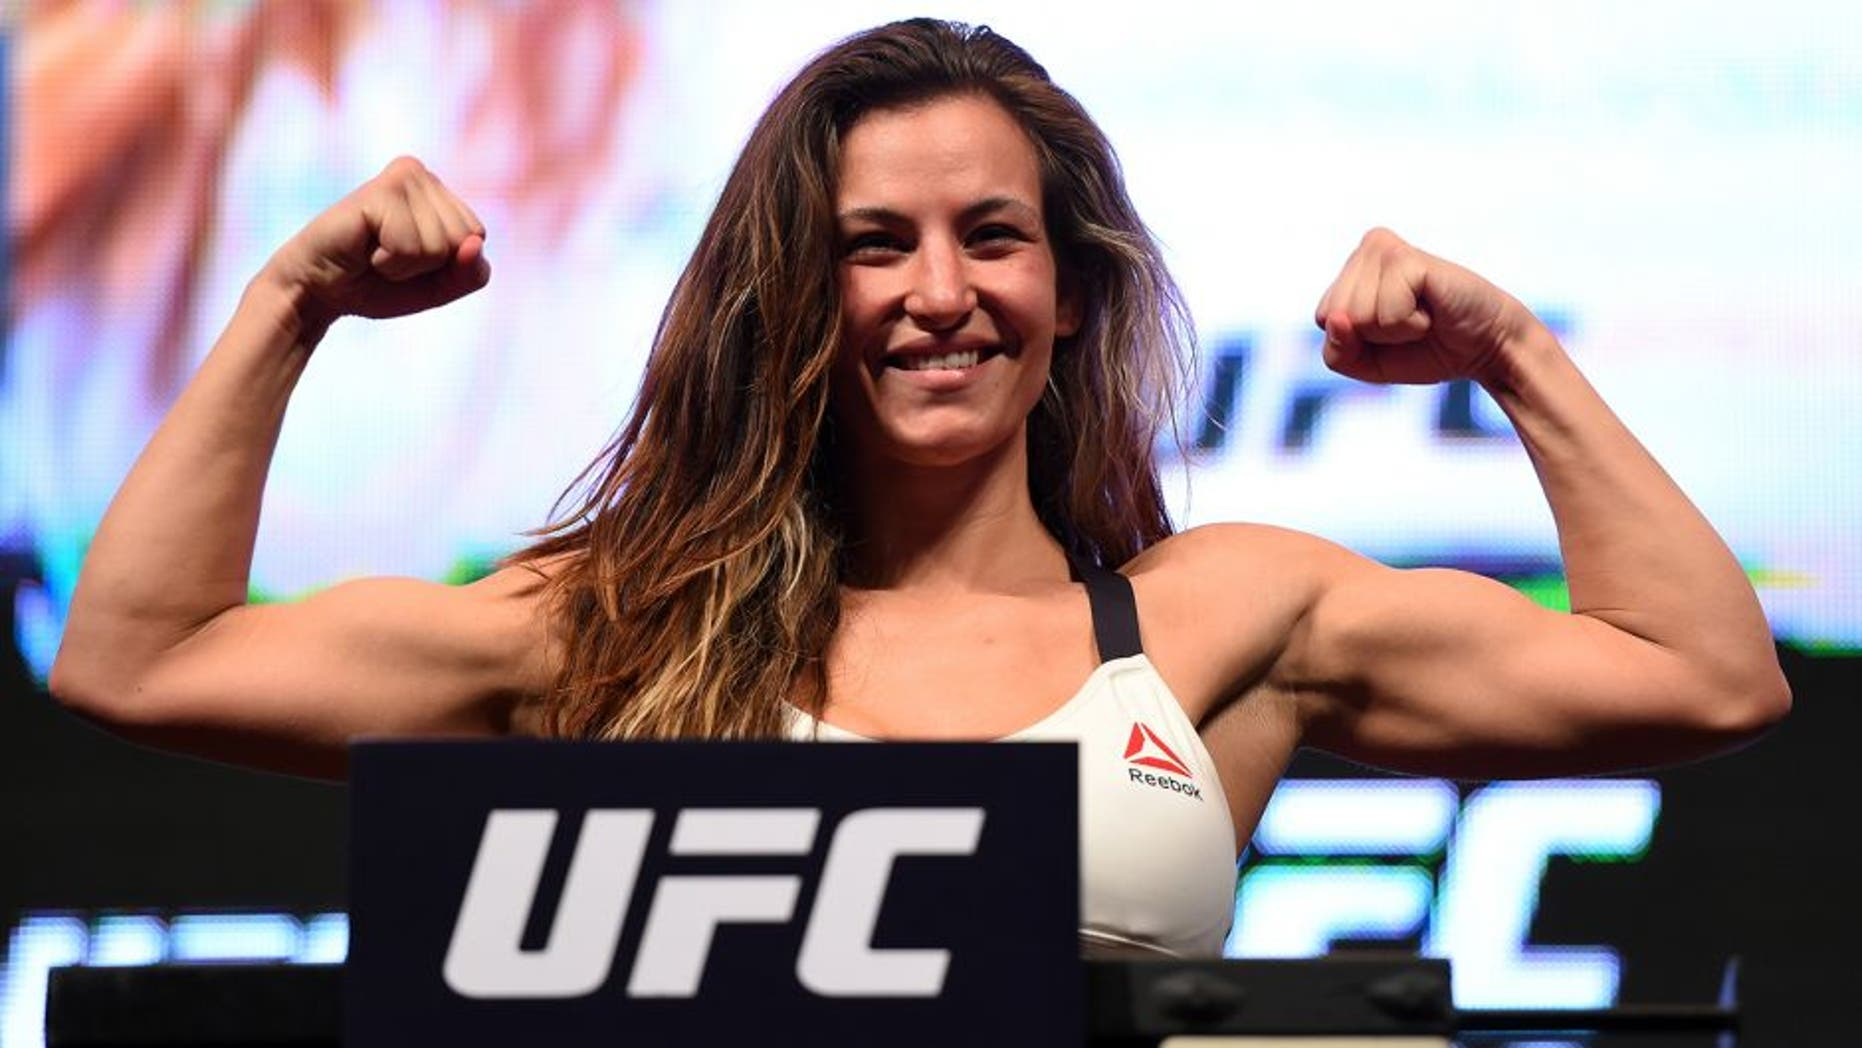 LAS VEGAS, NV - MARCH 04: Miesha Tate weighs in during the UFC 196 Weigh-in at the MGM Grand Garden Arena on March 4, 2016 in Las Vegas, Nevada. (Photo by Josh Hedges/Zuffa LLC/Zuffa LLC via Getty Images)